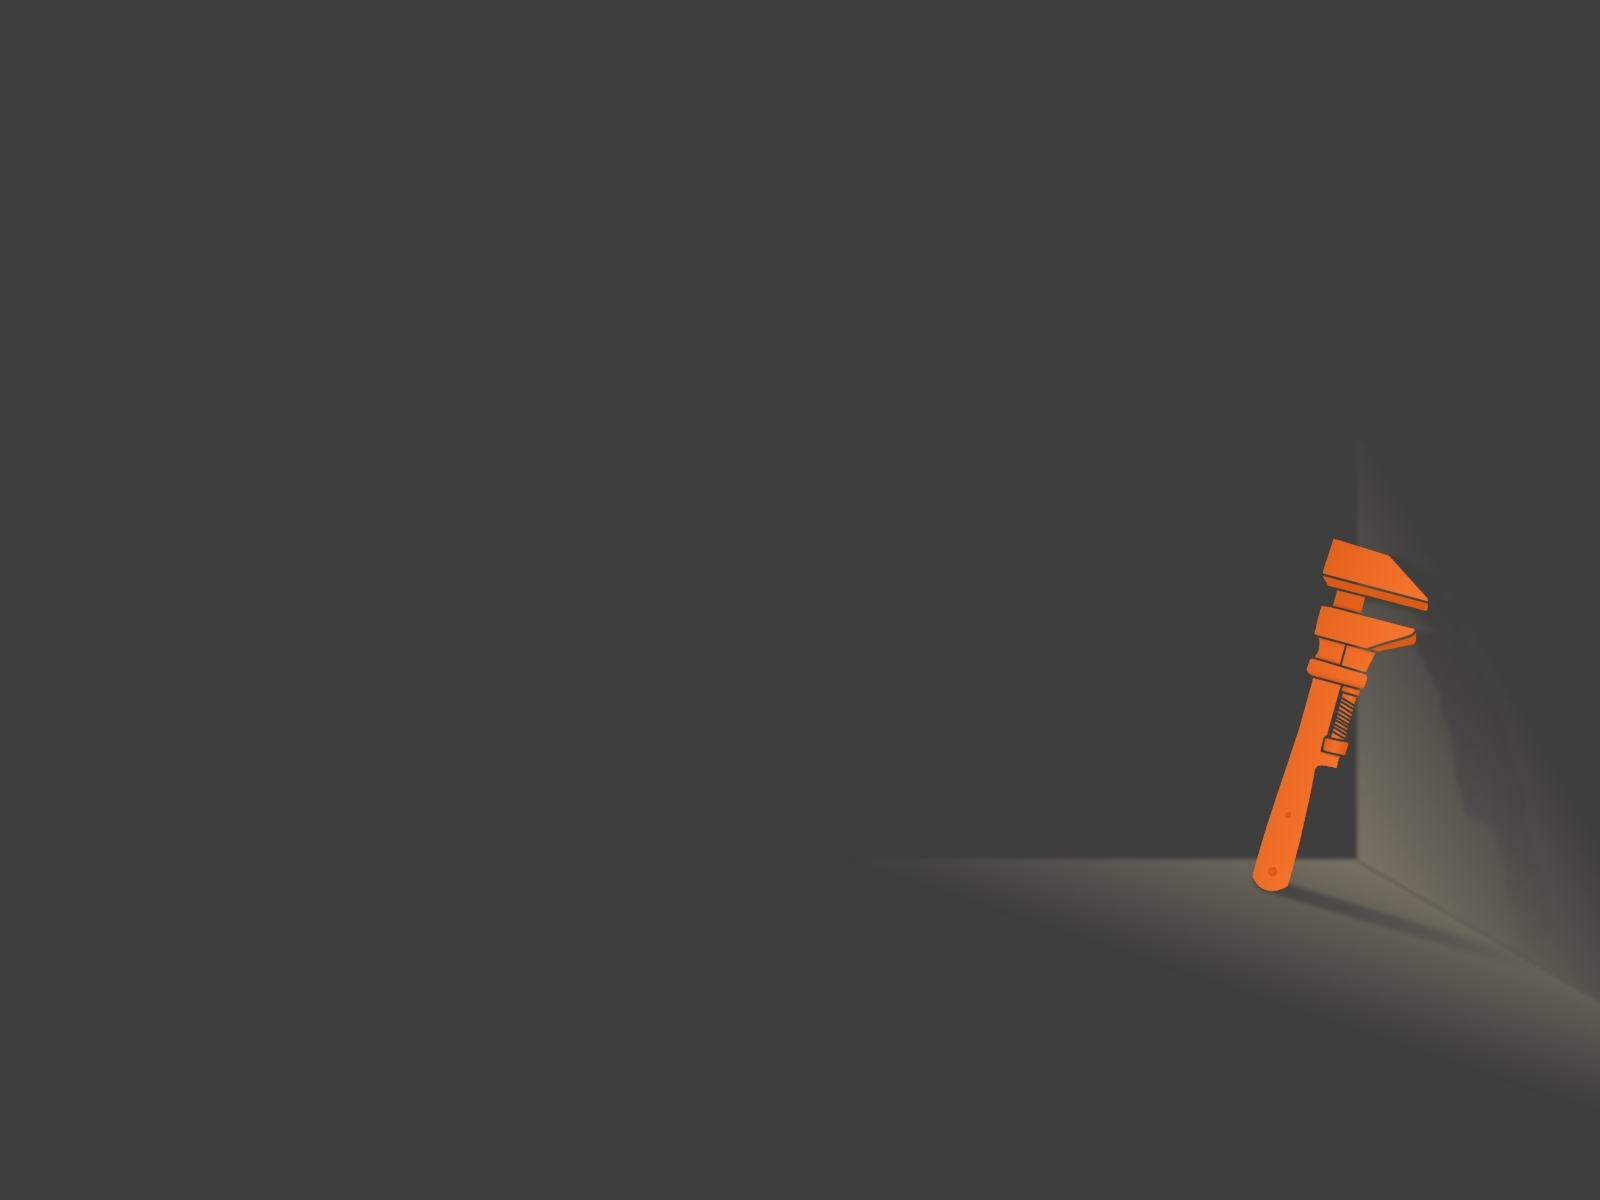 Engineer TF2 Wrench team HD Wallpaper